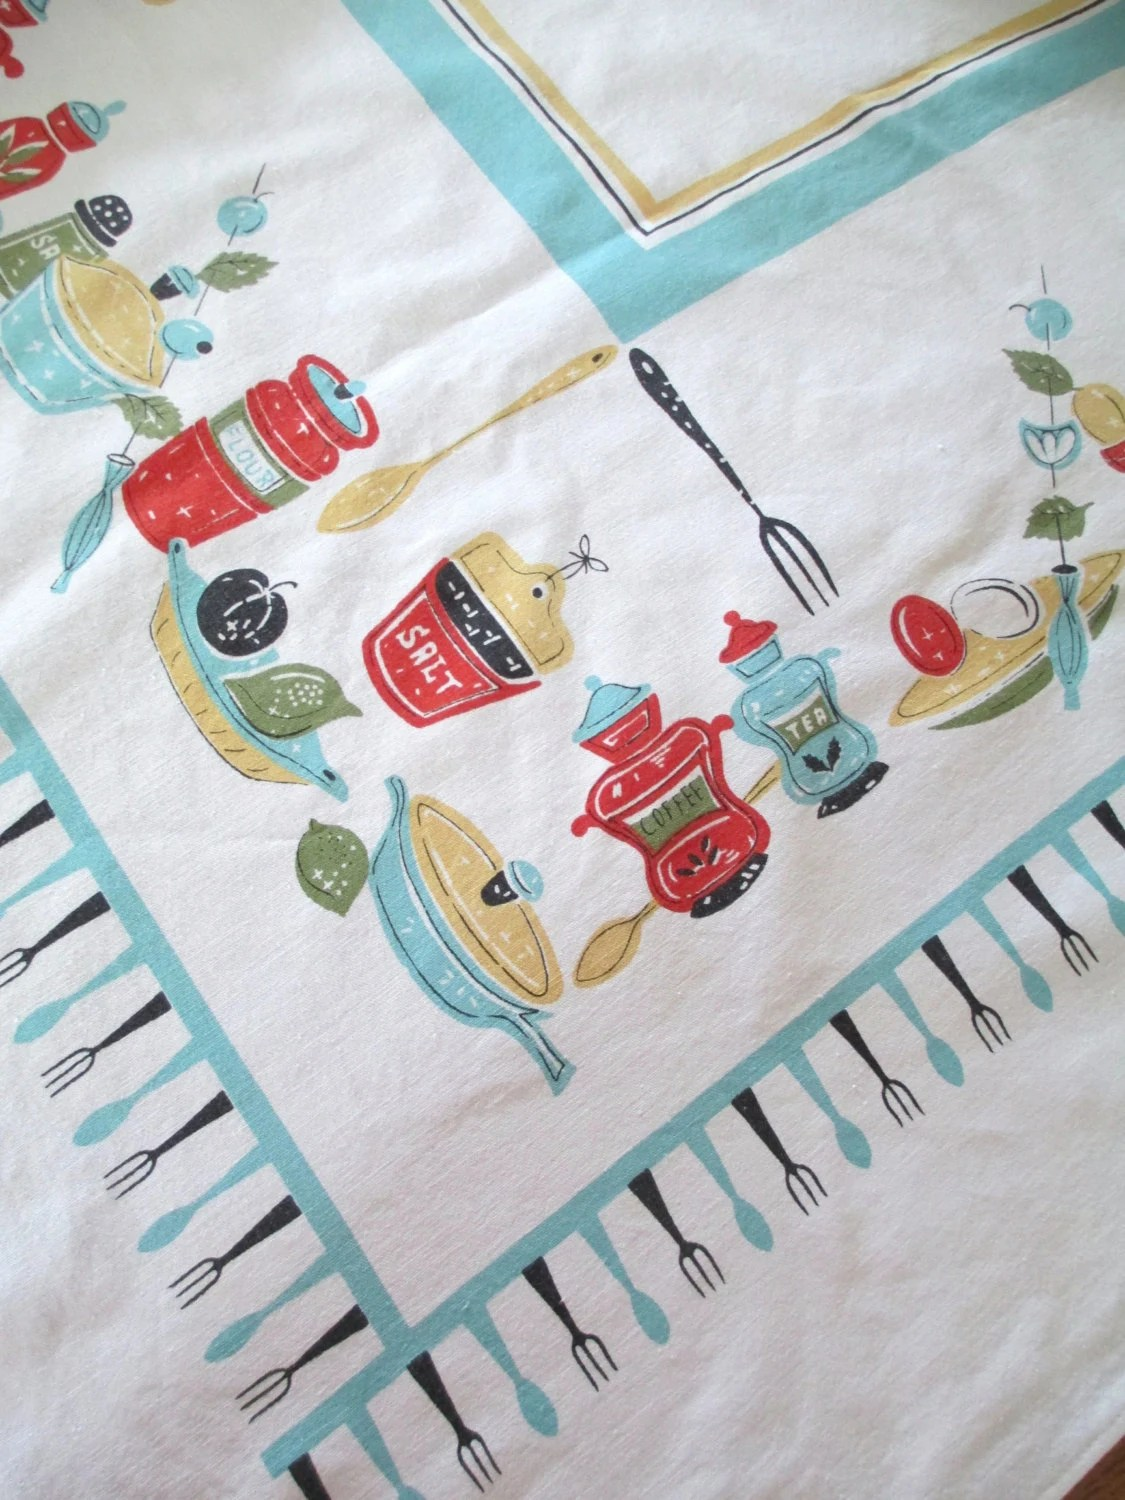 Vintage Cotton Printed Tablecloth Aqua Turquoise Blue Red